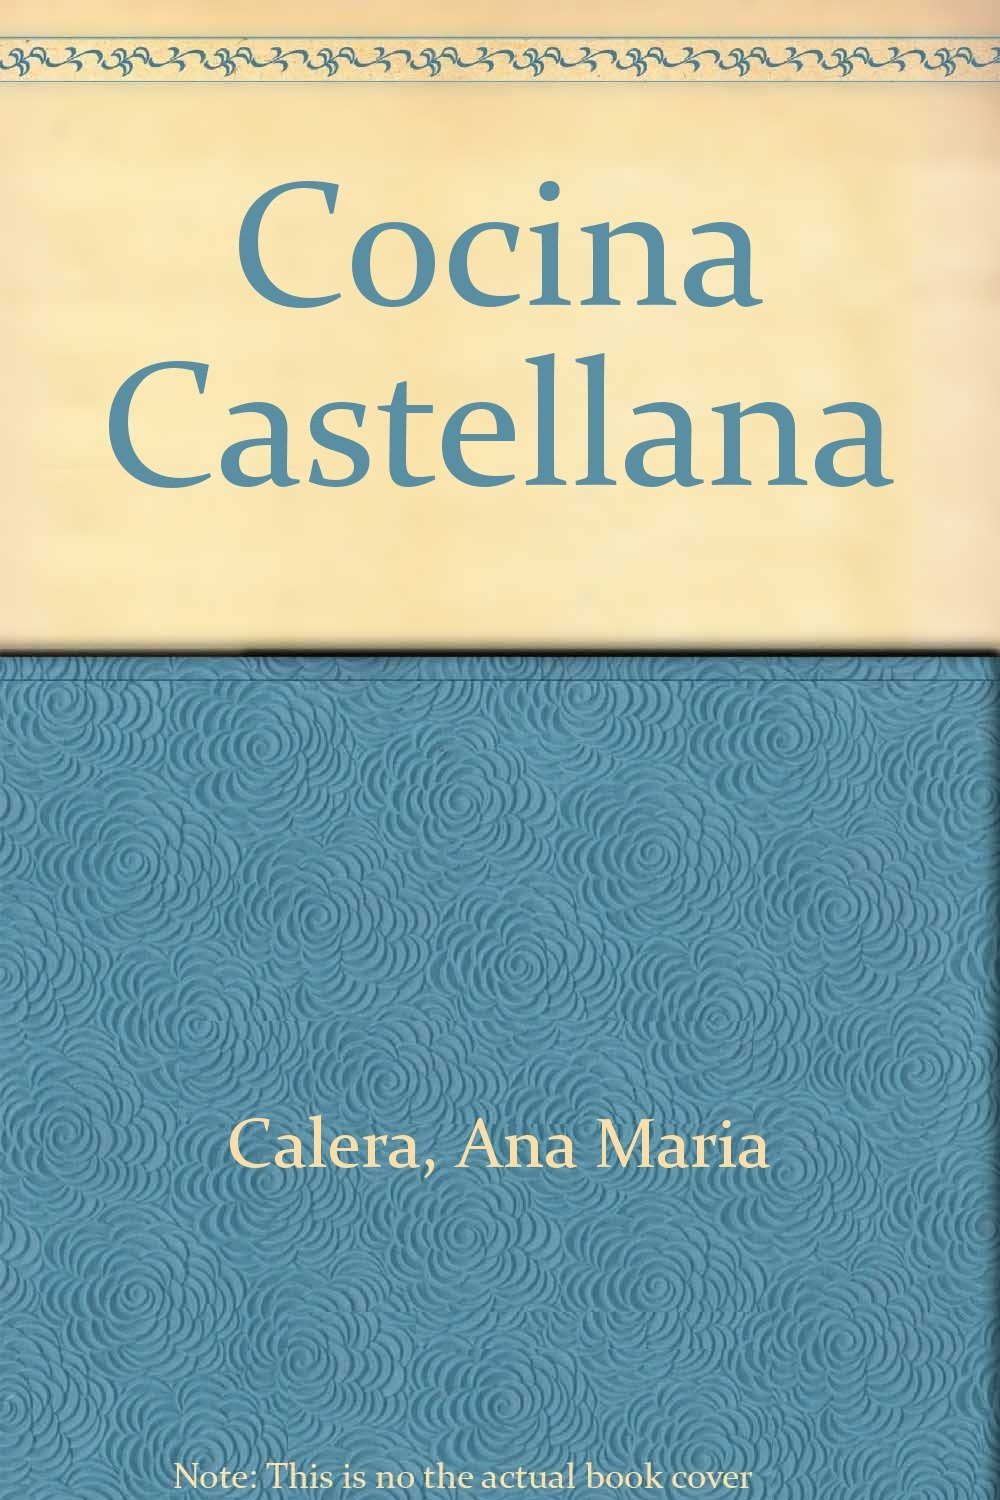 Cocina Castellana (Spanish Edition) by Everest Pub